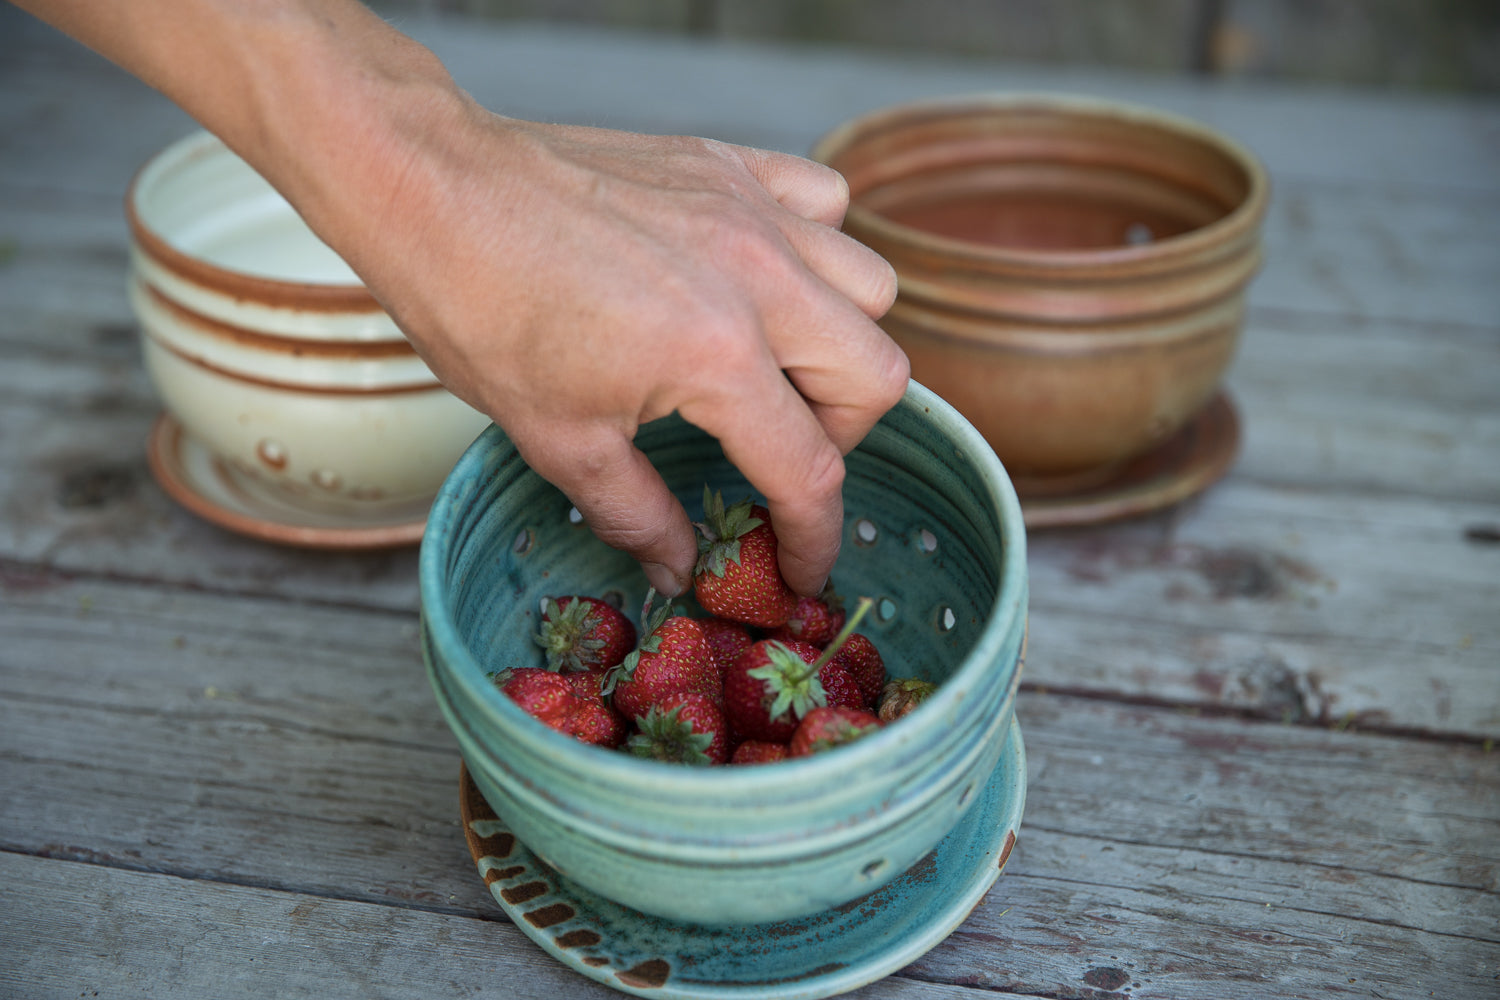 Berry Bowl Woodfired